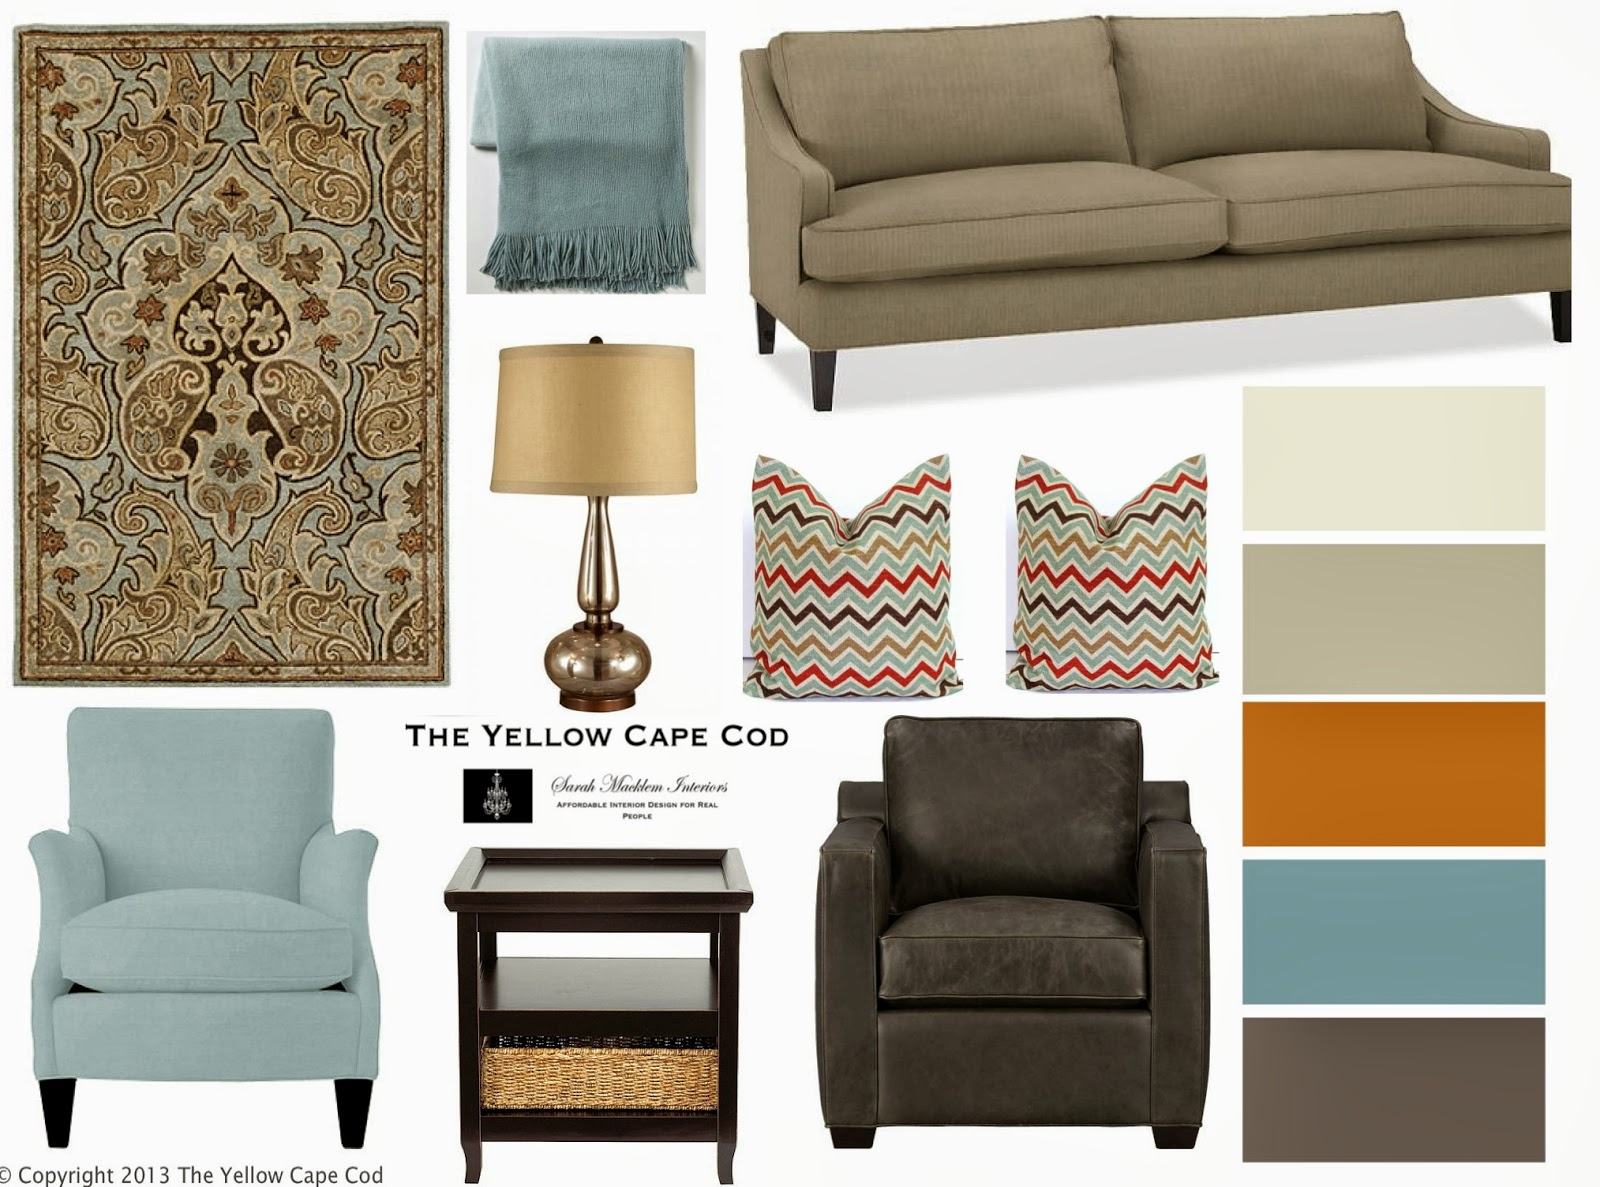 The Yellow Cape Cod: His and Her Chairs~How to mix ...